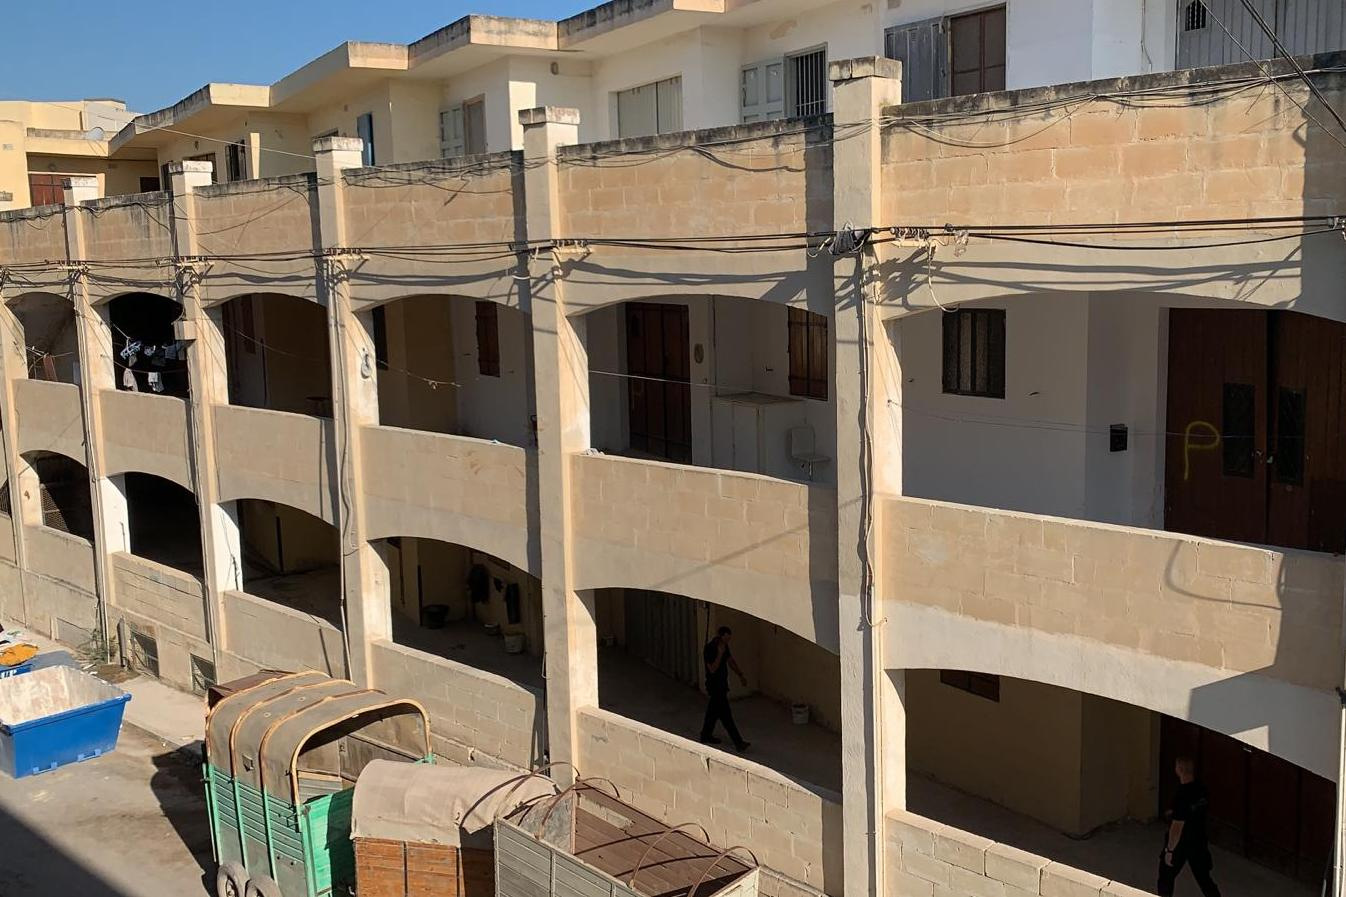 Marsa's 'horse hotel' has been home to dozens of migrants. Photo: Ivan Martin